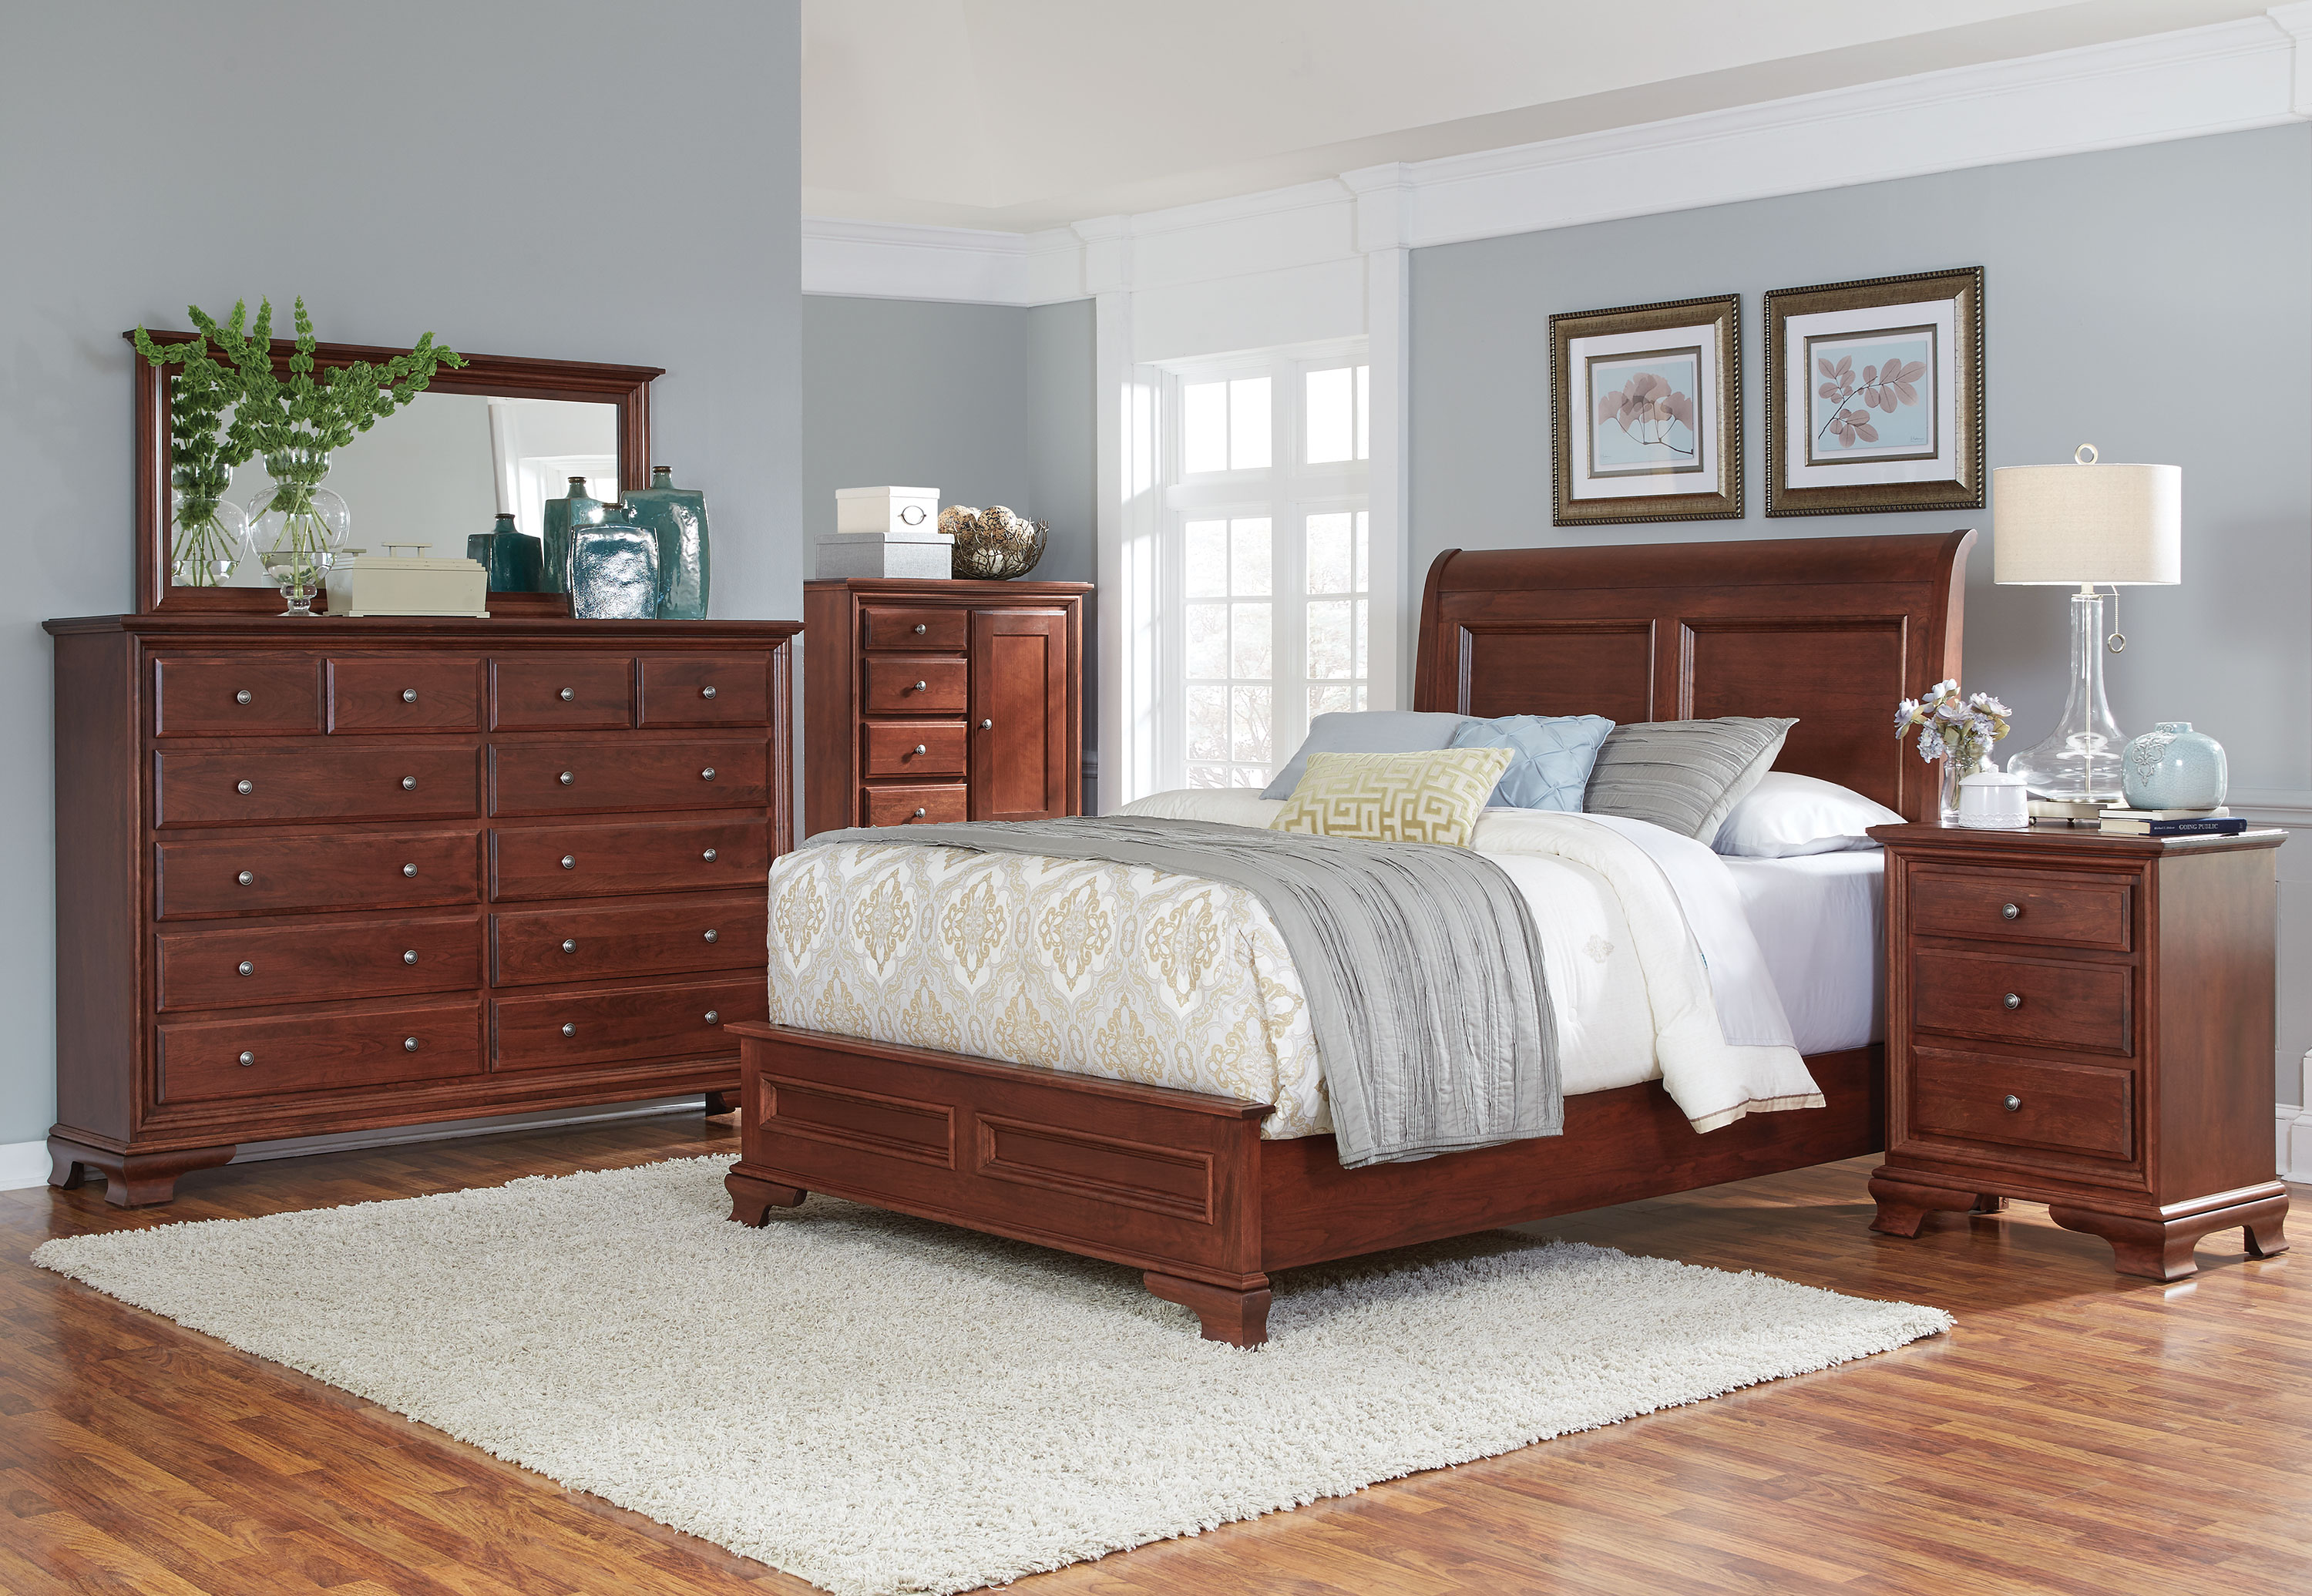 Amish Village Amish Classic 4 Piece Queen Bedroom